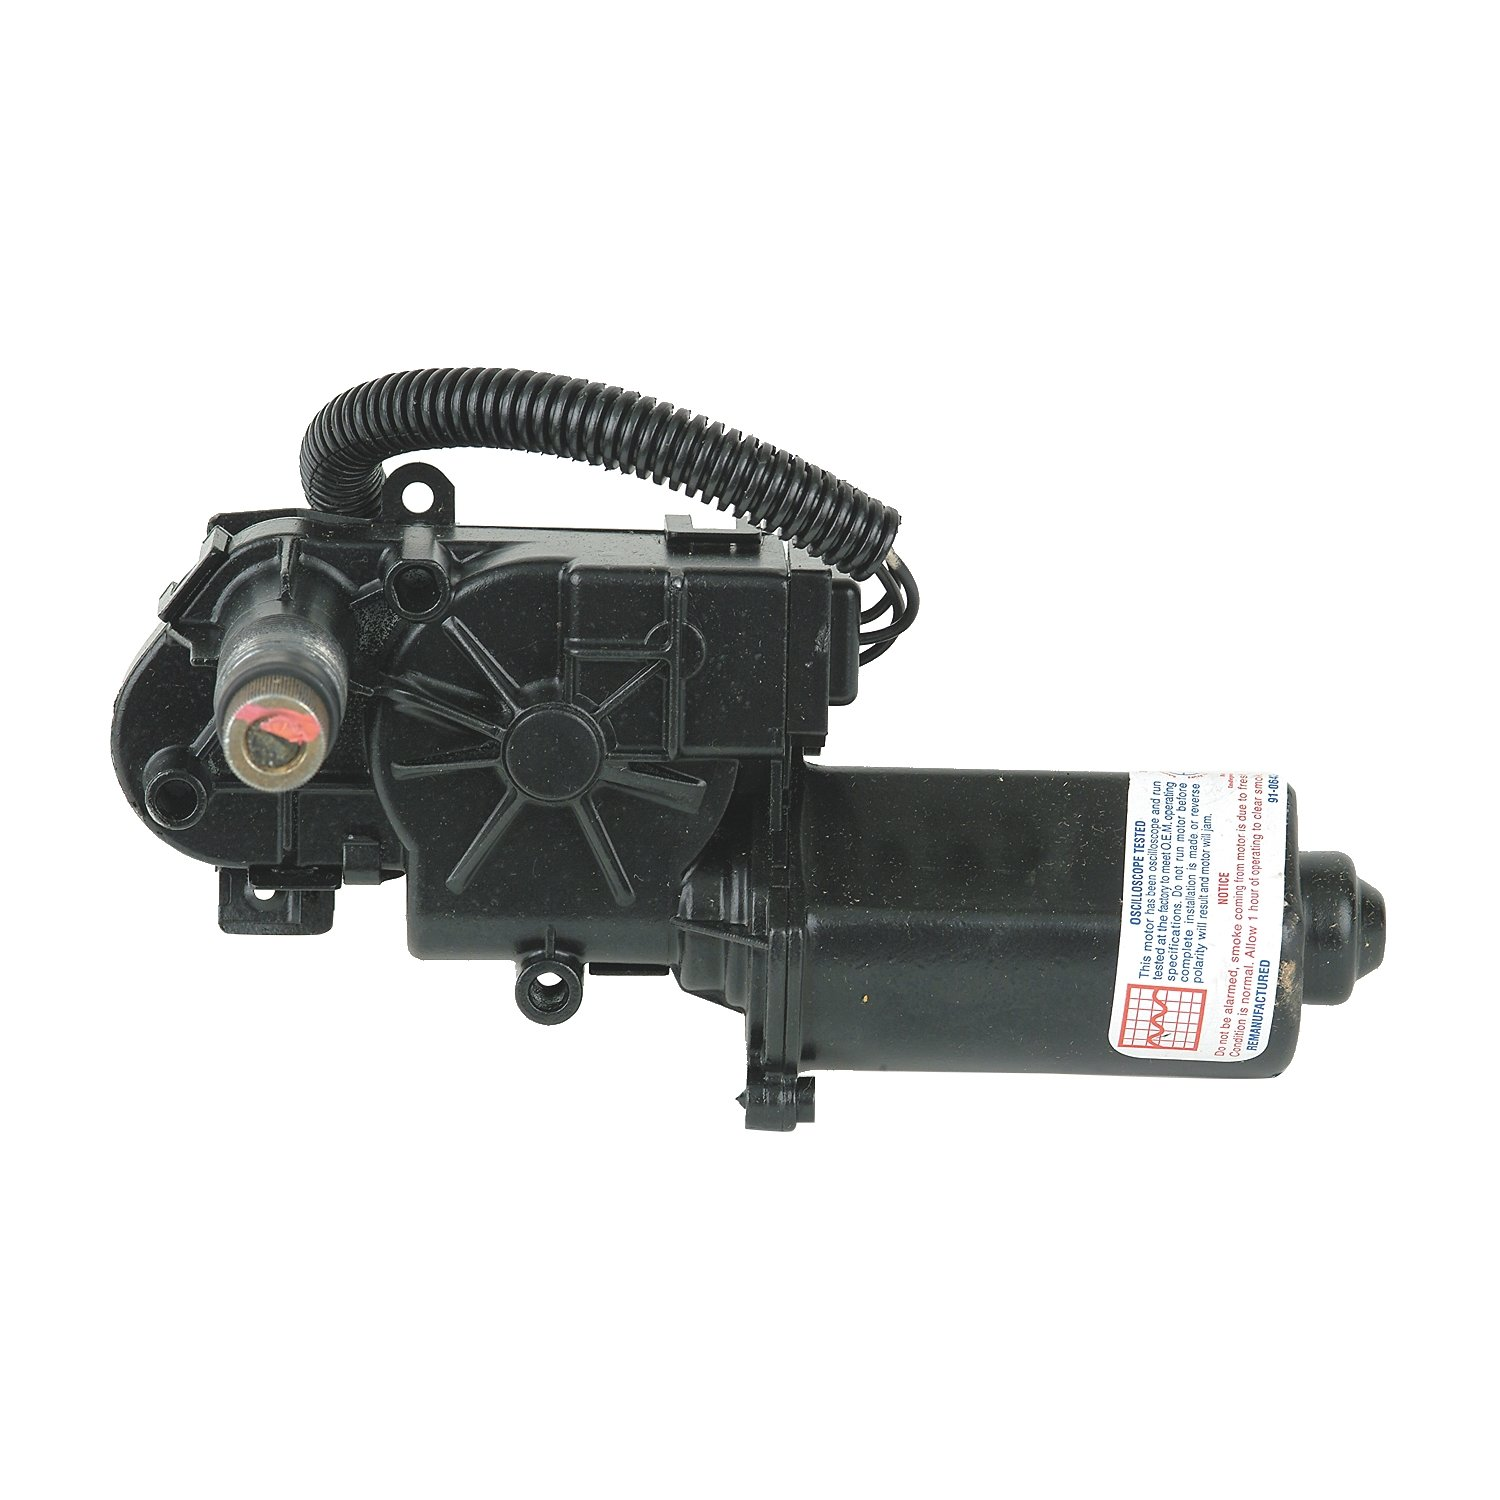 Cardone 40 - 449 remanufacturados Domestic Motor para ...